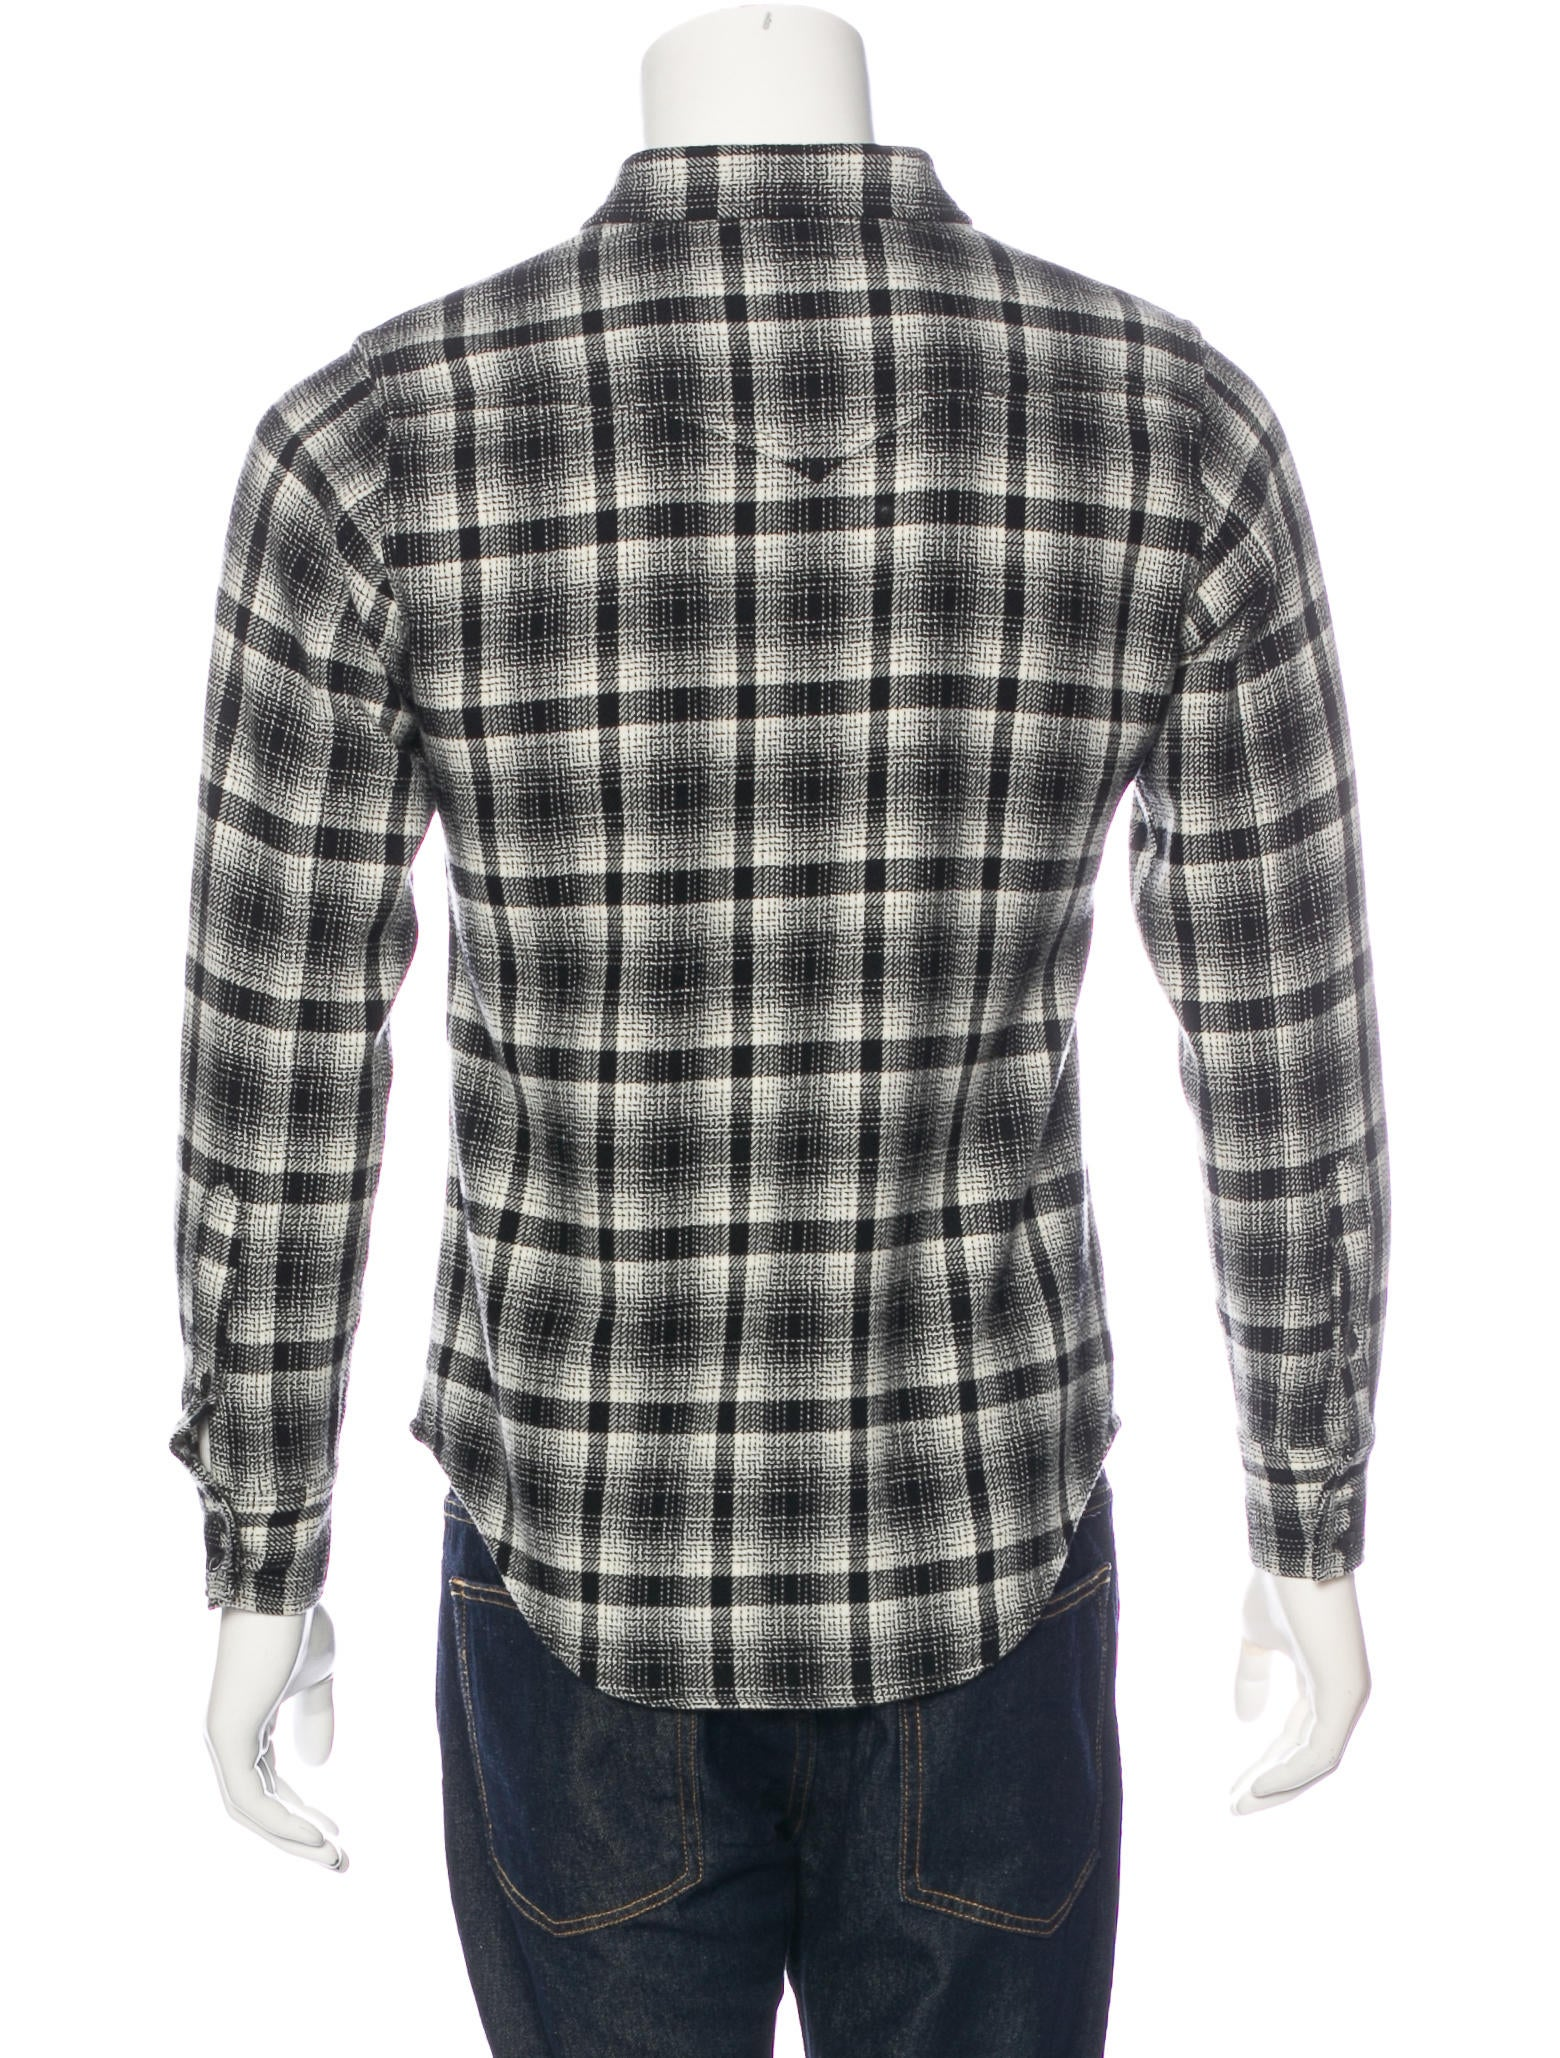 Saint Laurent 2016 Wool Plaid Flannel Shirt Clothing